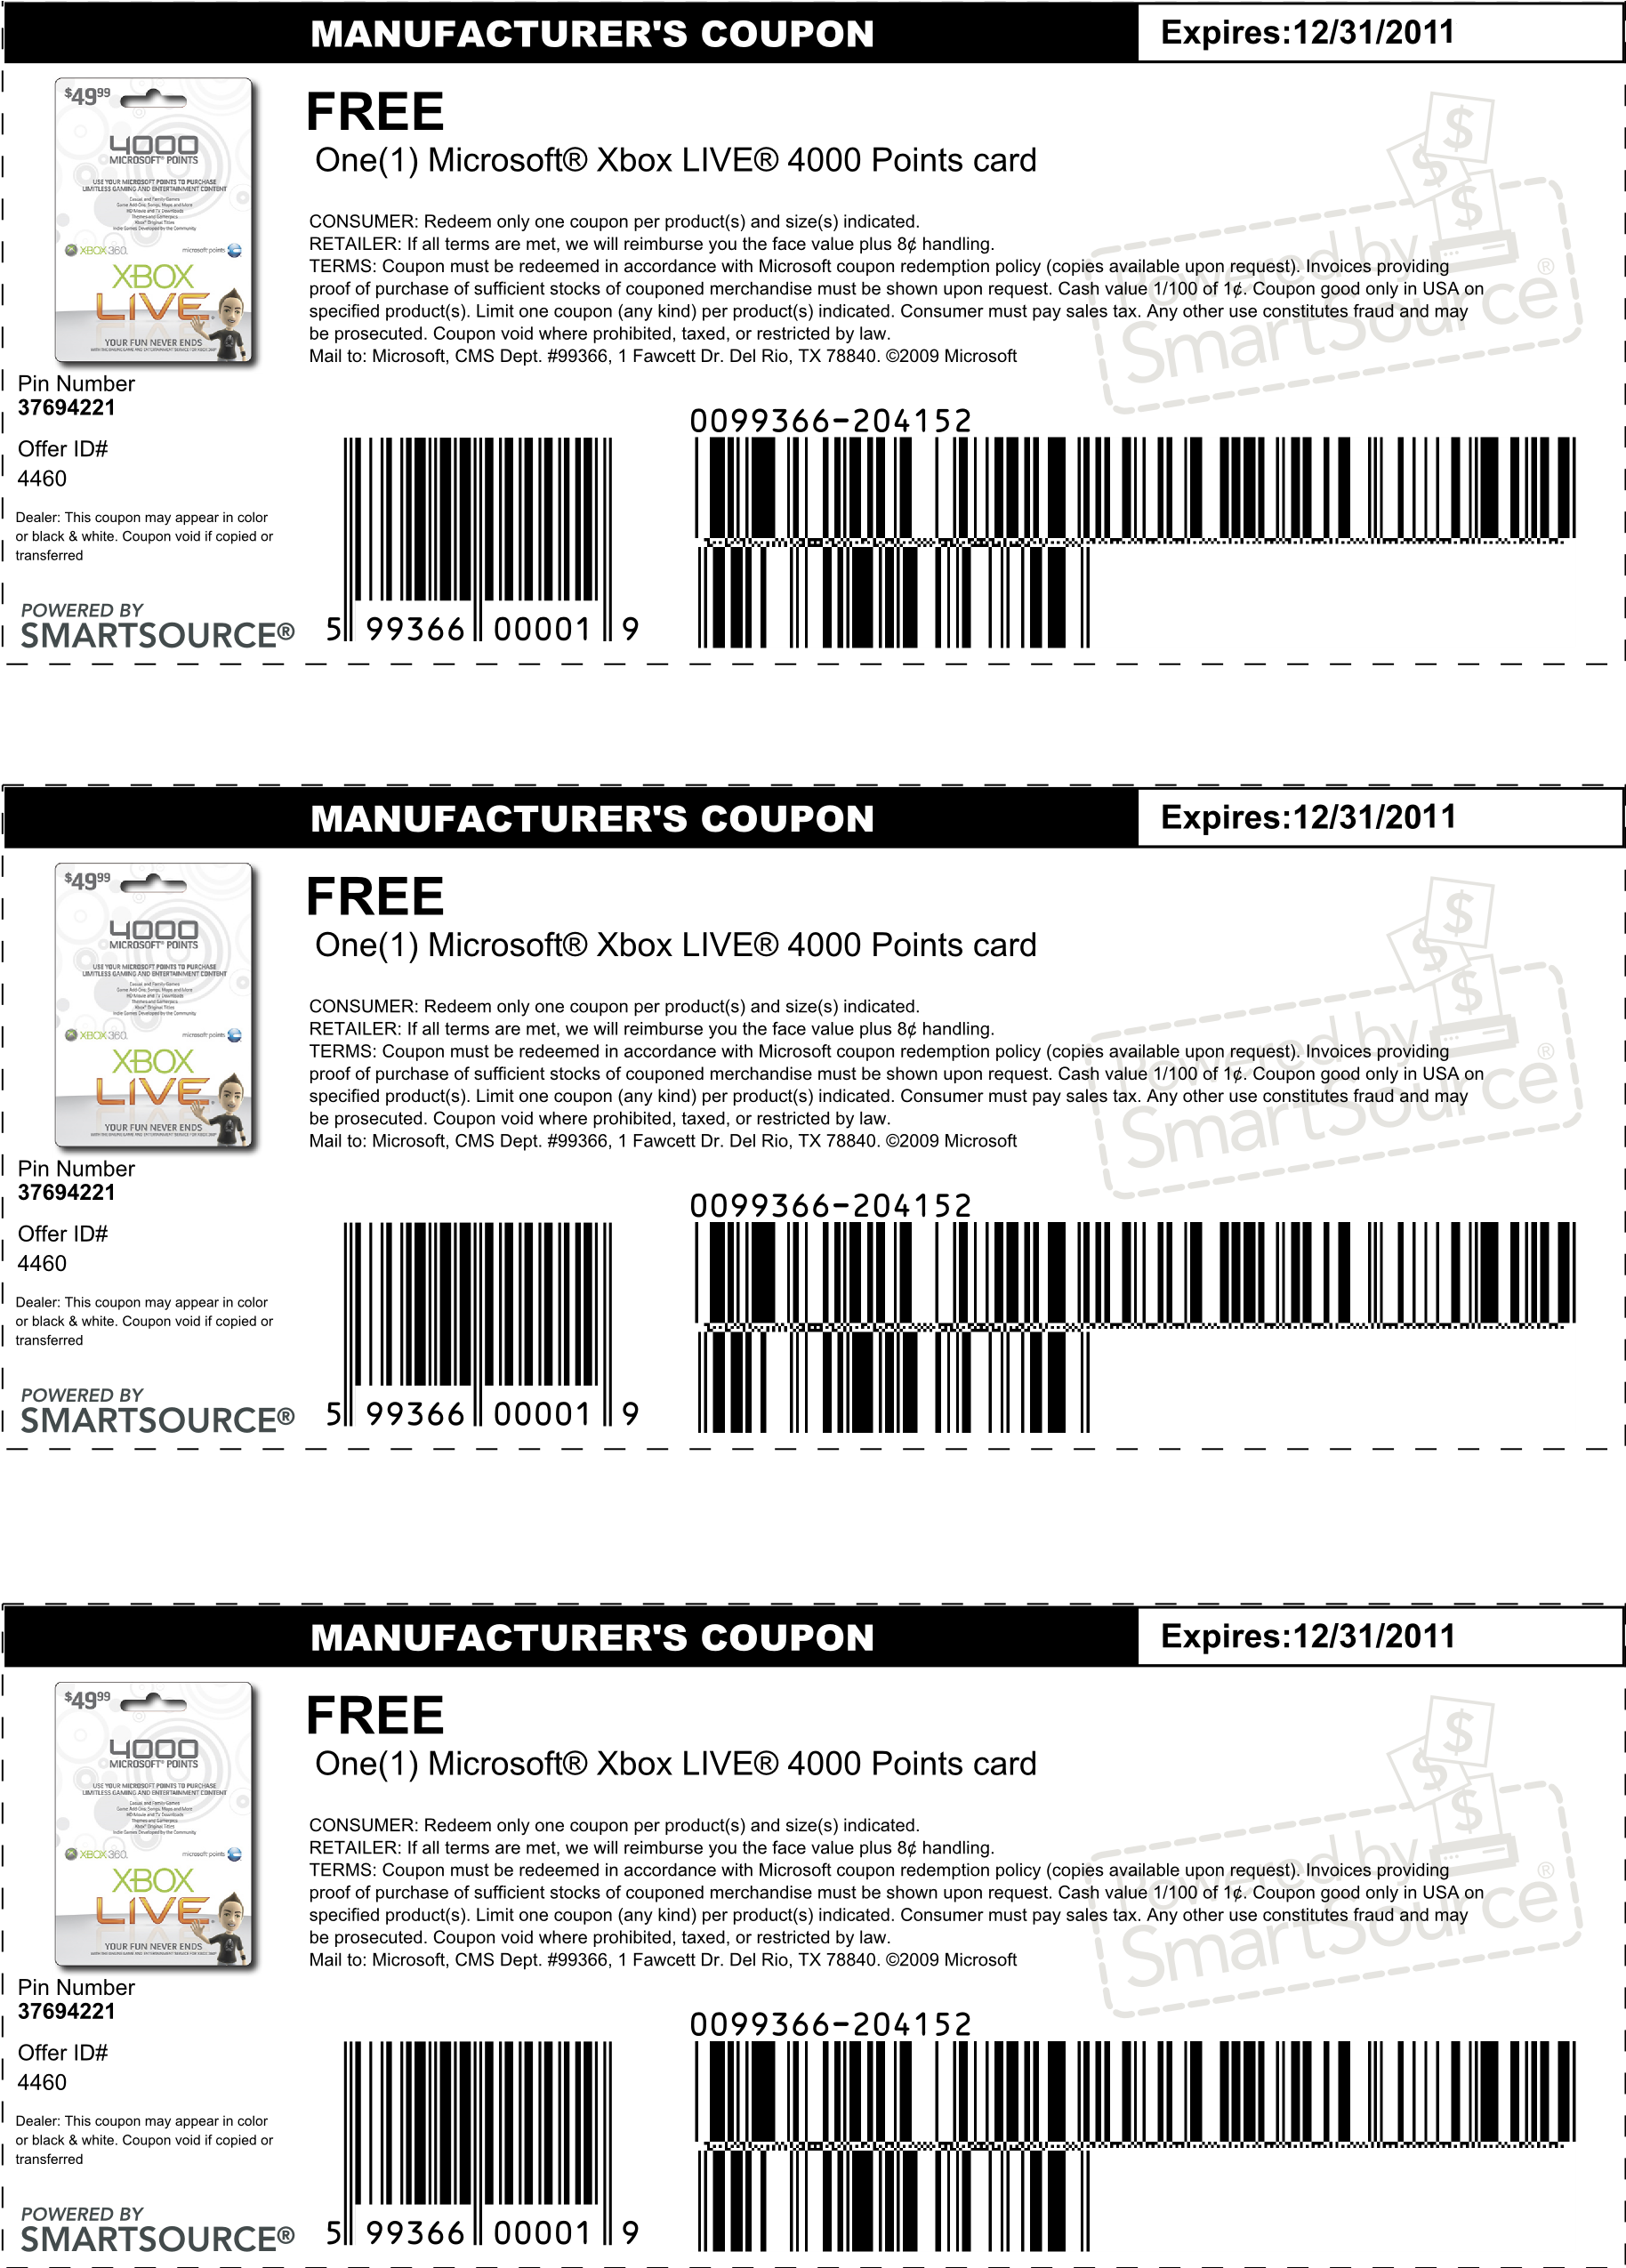 image 196473 fake coupons know your meme